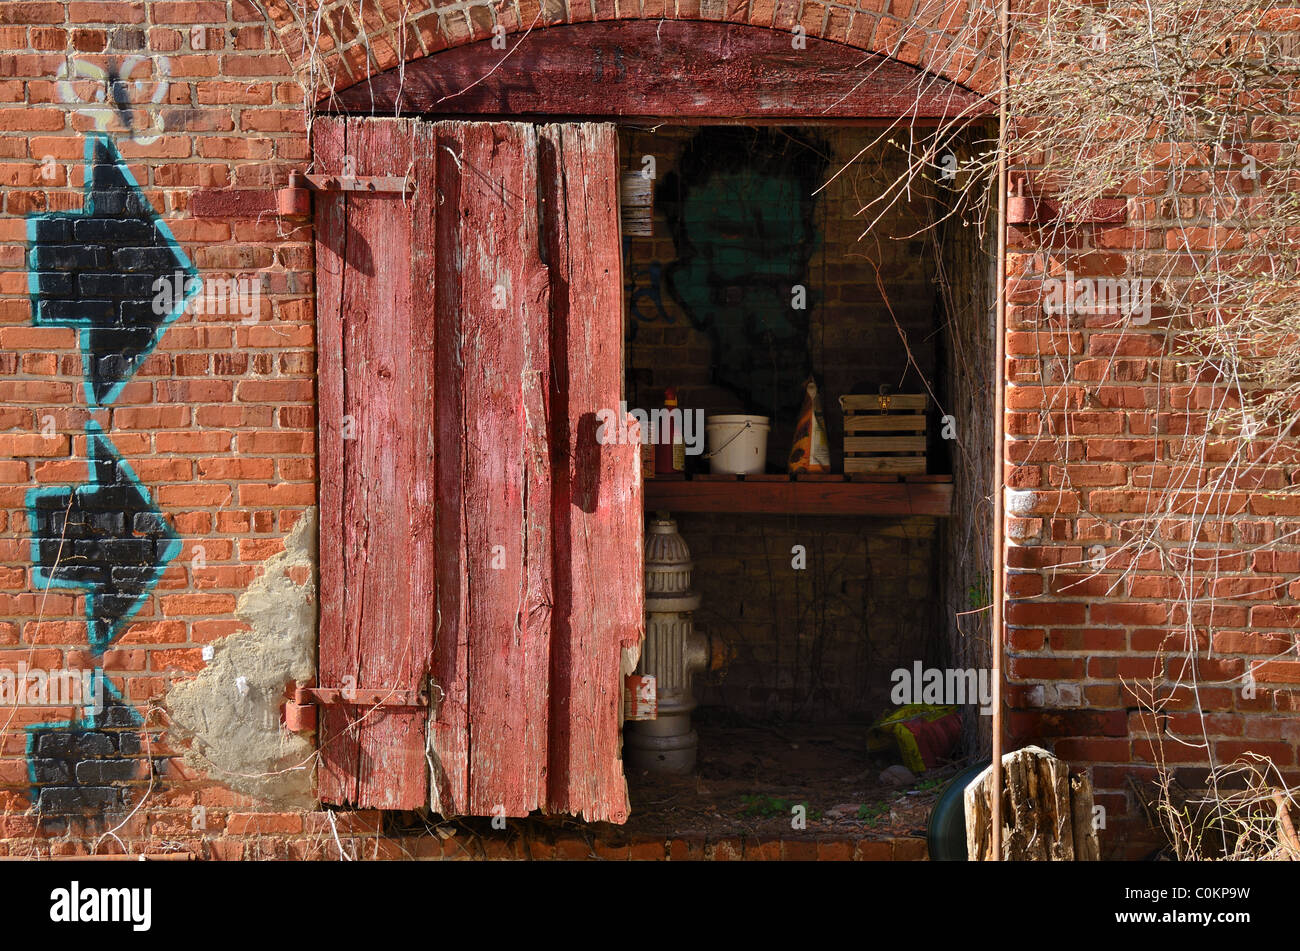 A gritty brick shed with graffiti - Stock Image